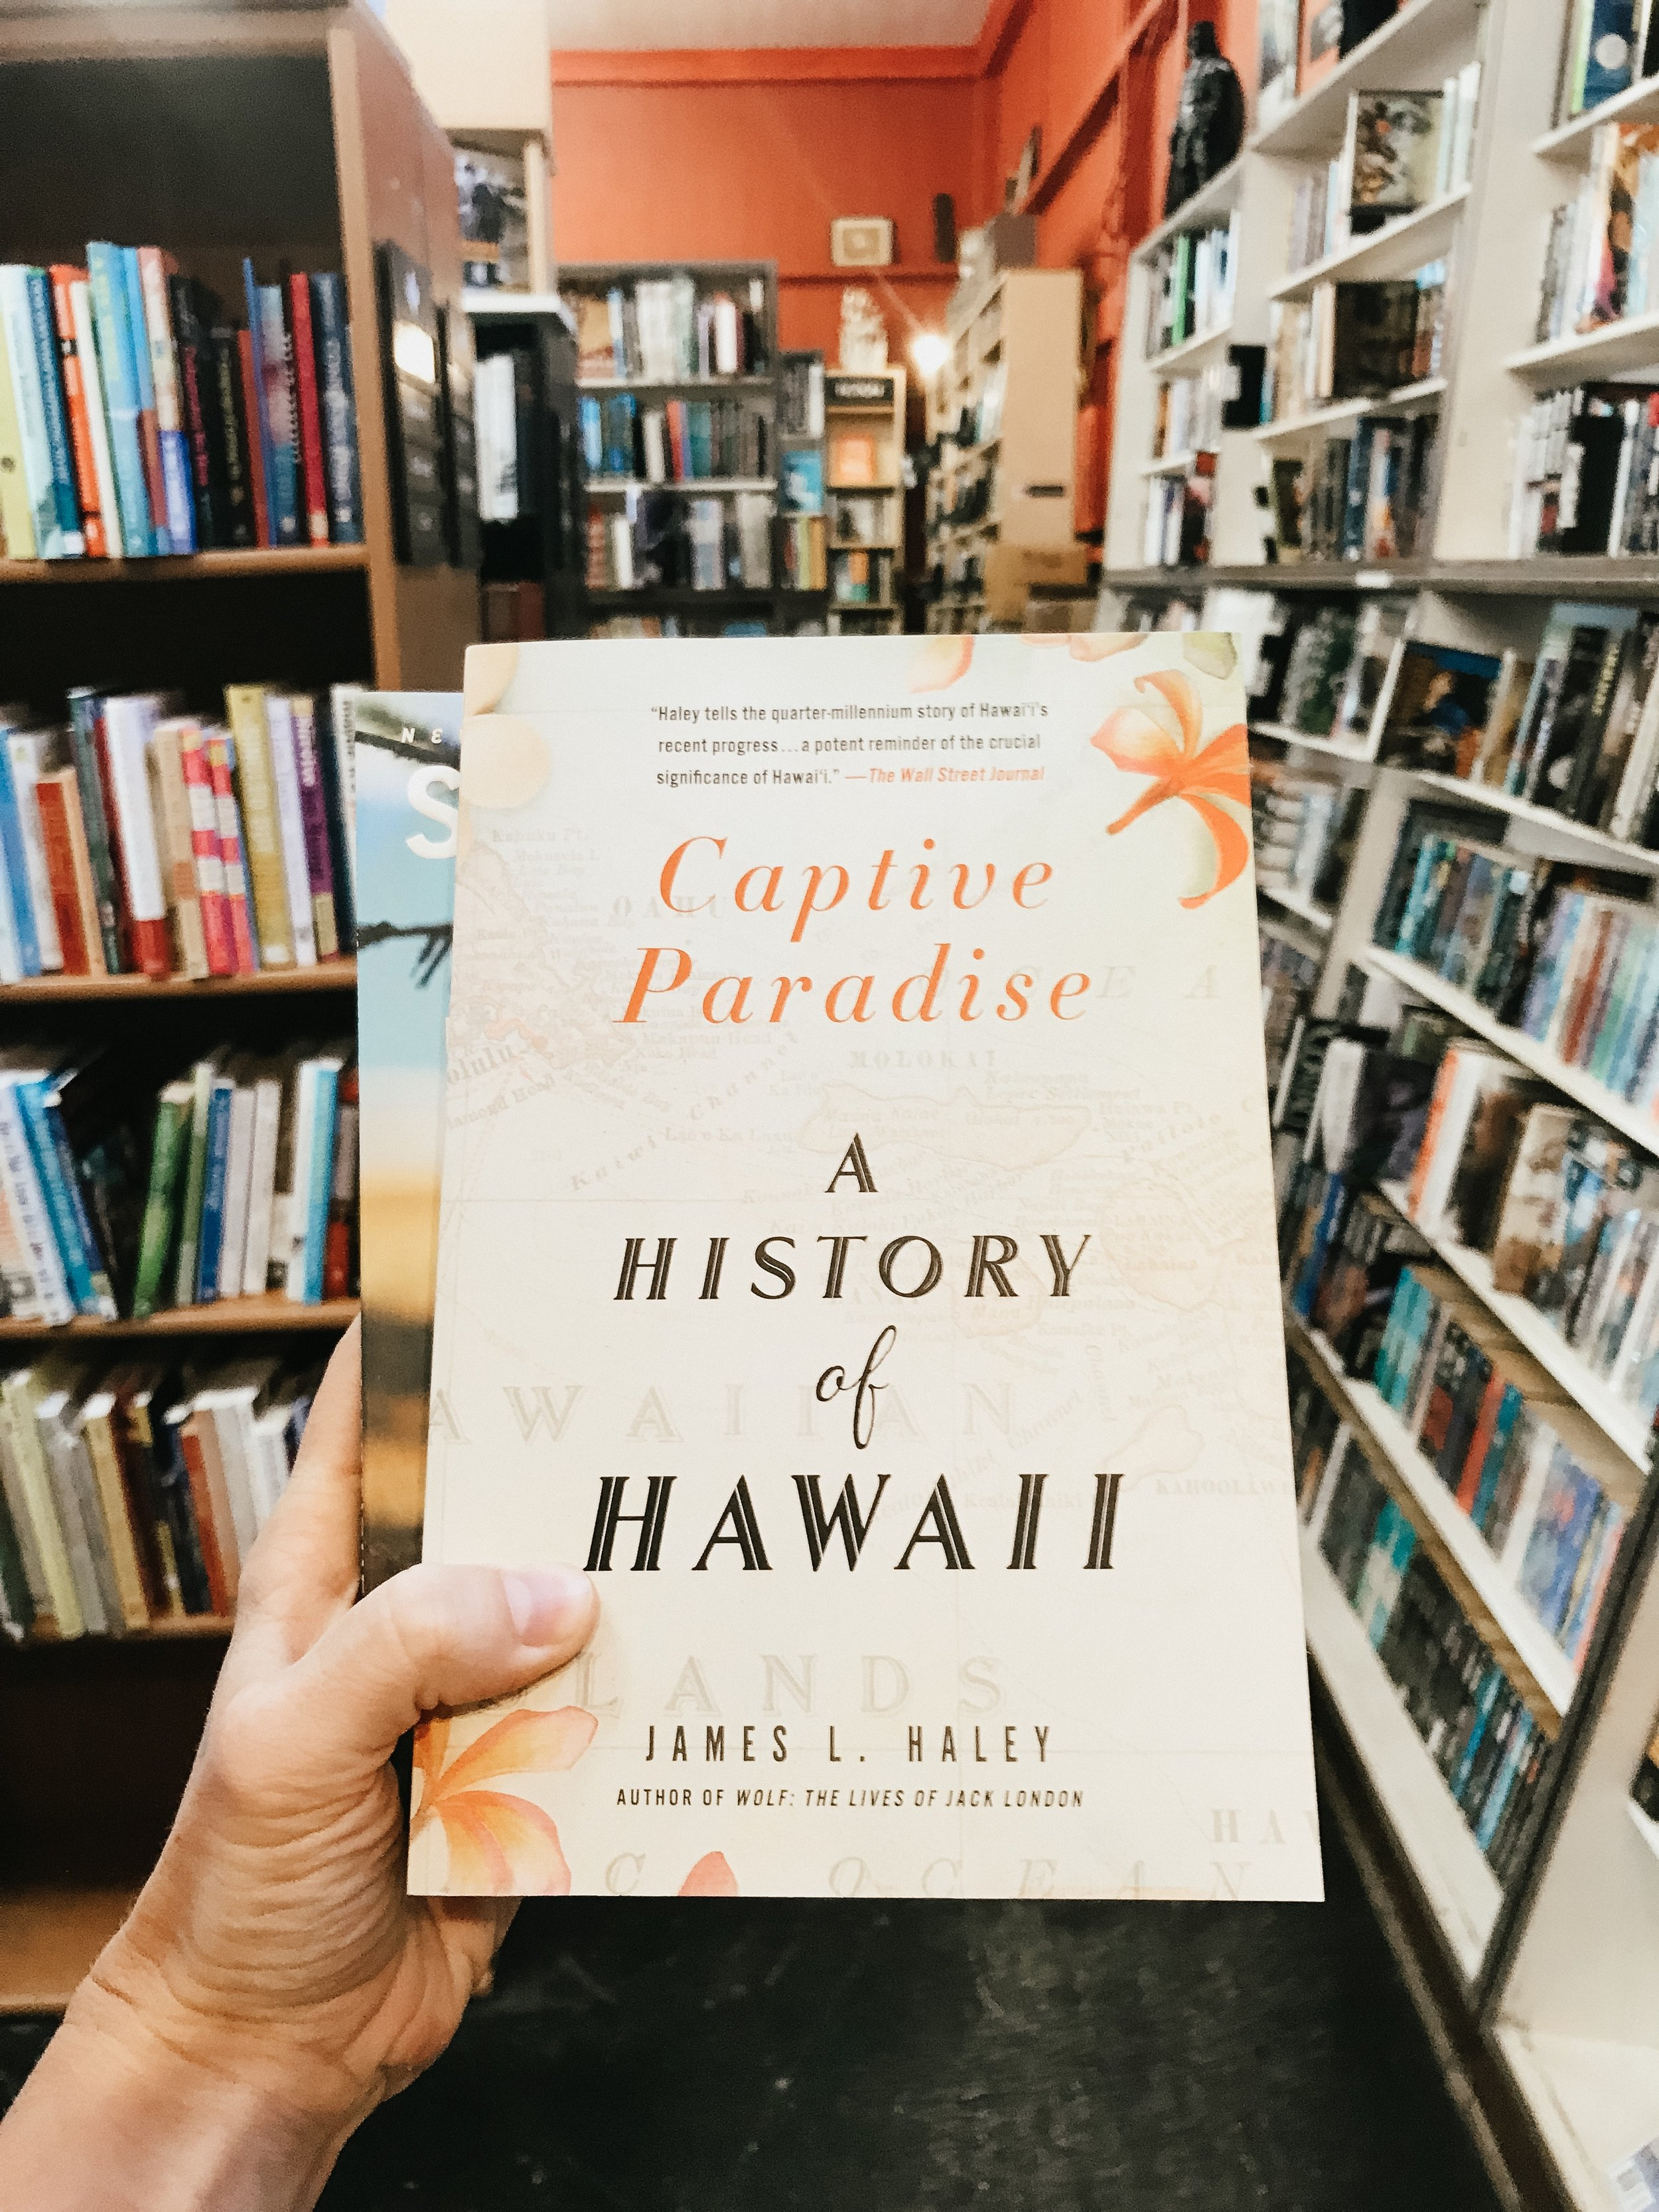 I stocked up on some books about Hawaii at the westernmost bookstore in the U.S. - Talk Story Bookstore in Hanapepe.